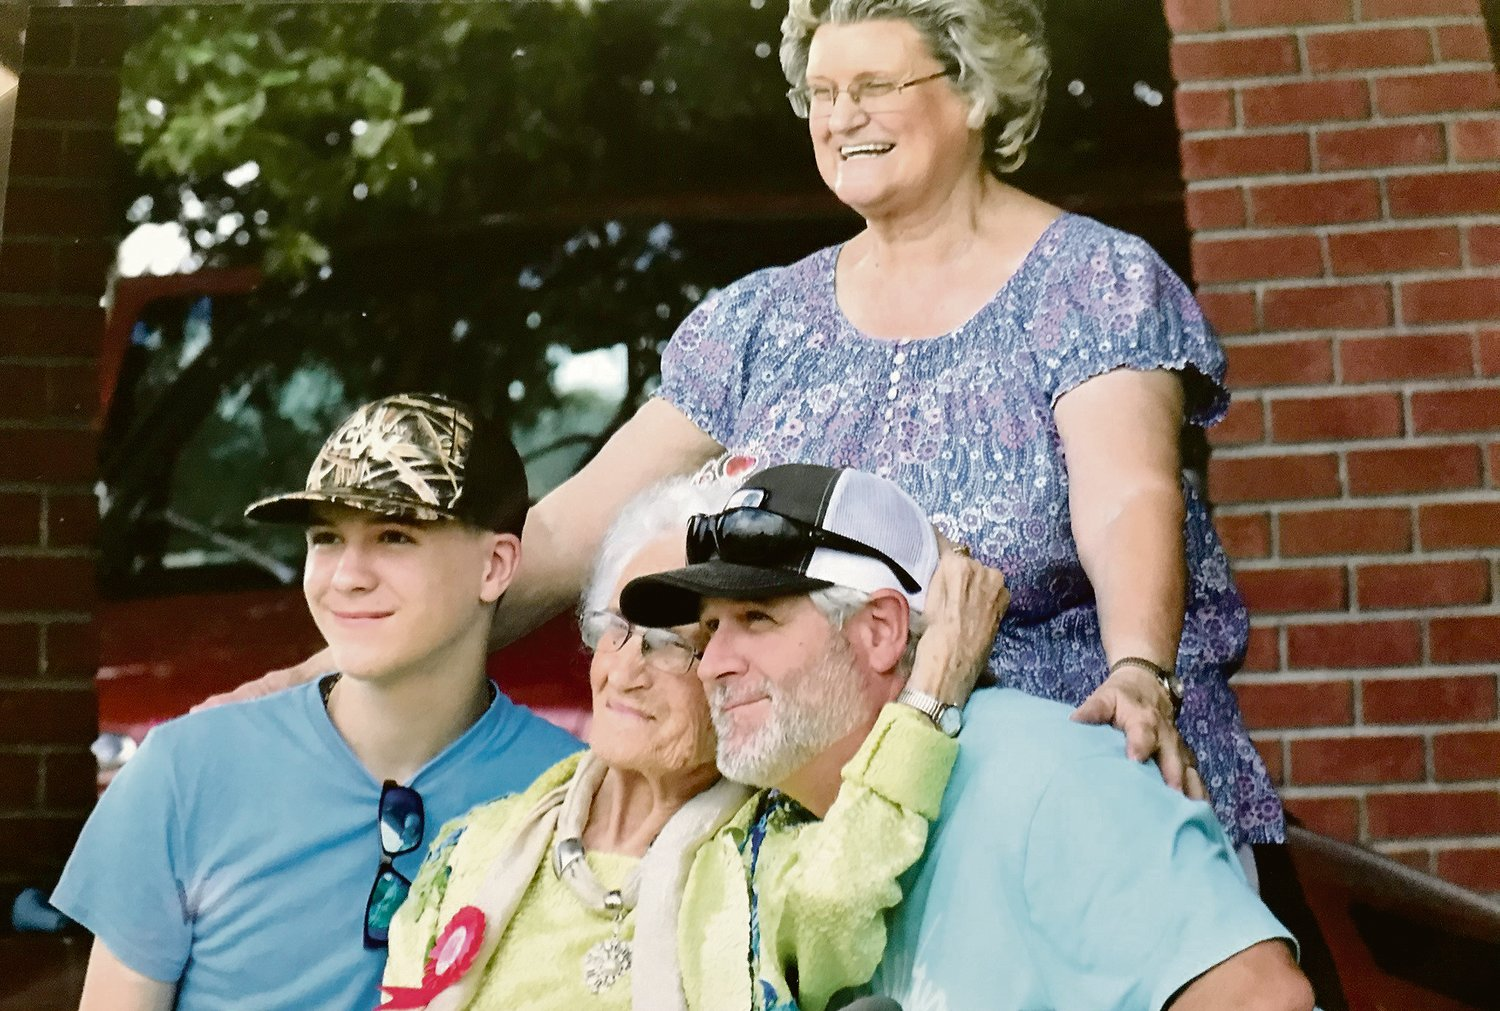 Matoaka Westbrook, center, hugs up to her family for a photo during the parade honoring her 100th birthday Aug. 15. From left, are Westbrookâ??s great grandson, Tadan Ivey; Westbrook; Westbrookâ??s grandson, Billy W. Ivey; and Westbrookâ??s daughter, Joan Ivey, standing.